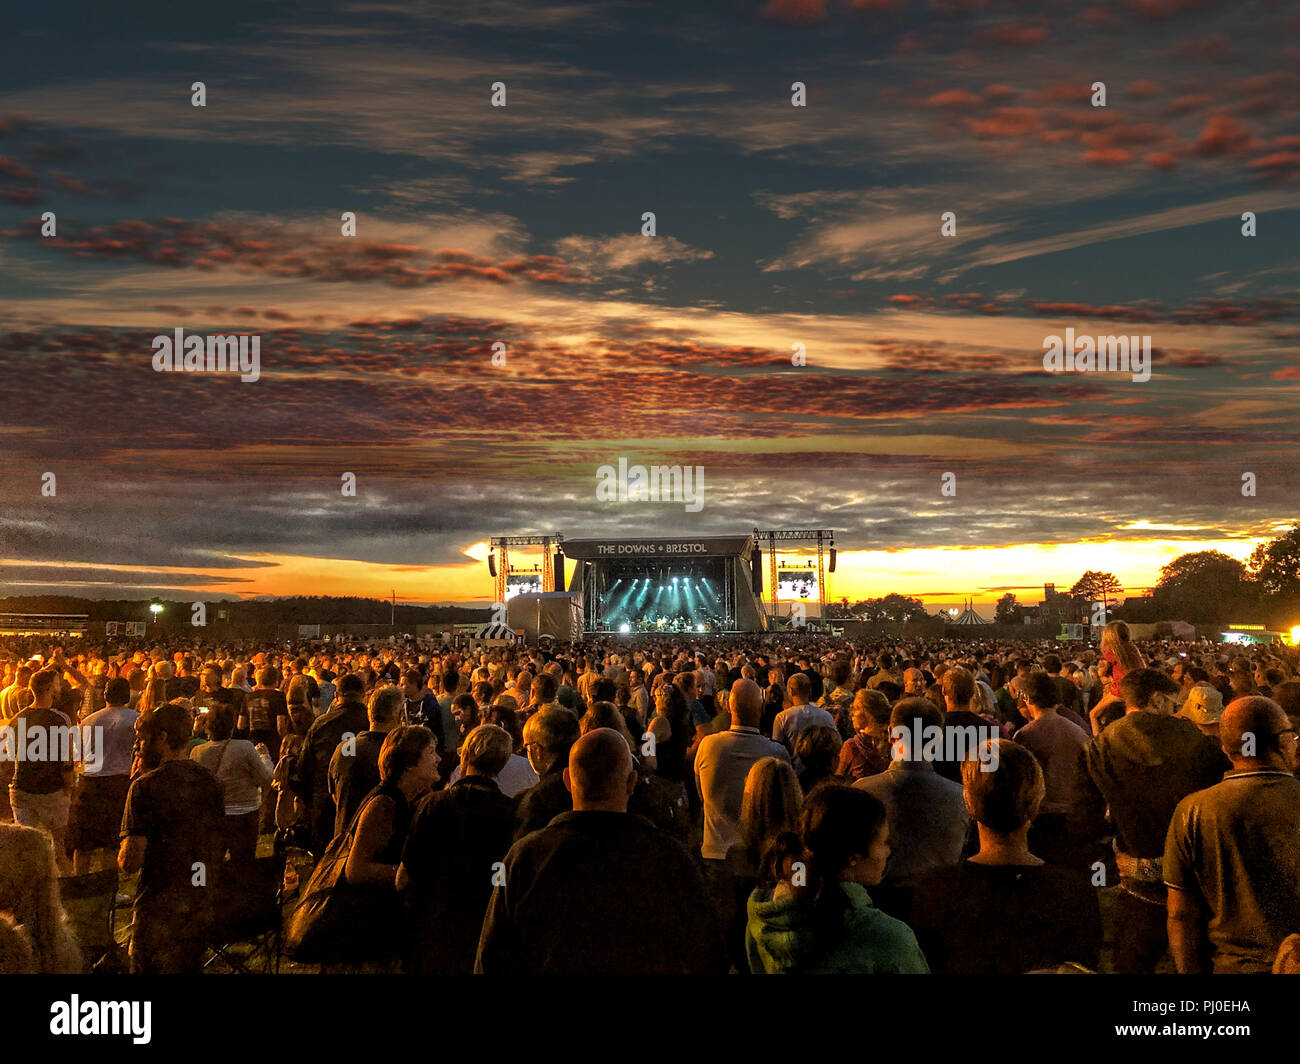 Large crowd watching music on a stage at sunset at a festival in Bristol ( The Downs ) summer vibes. - Stock Image